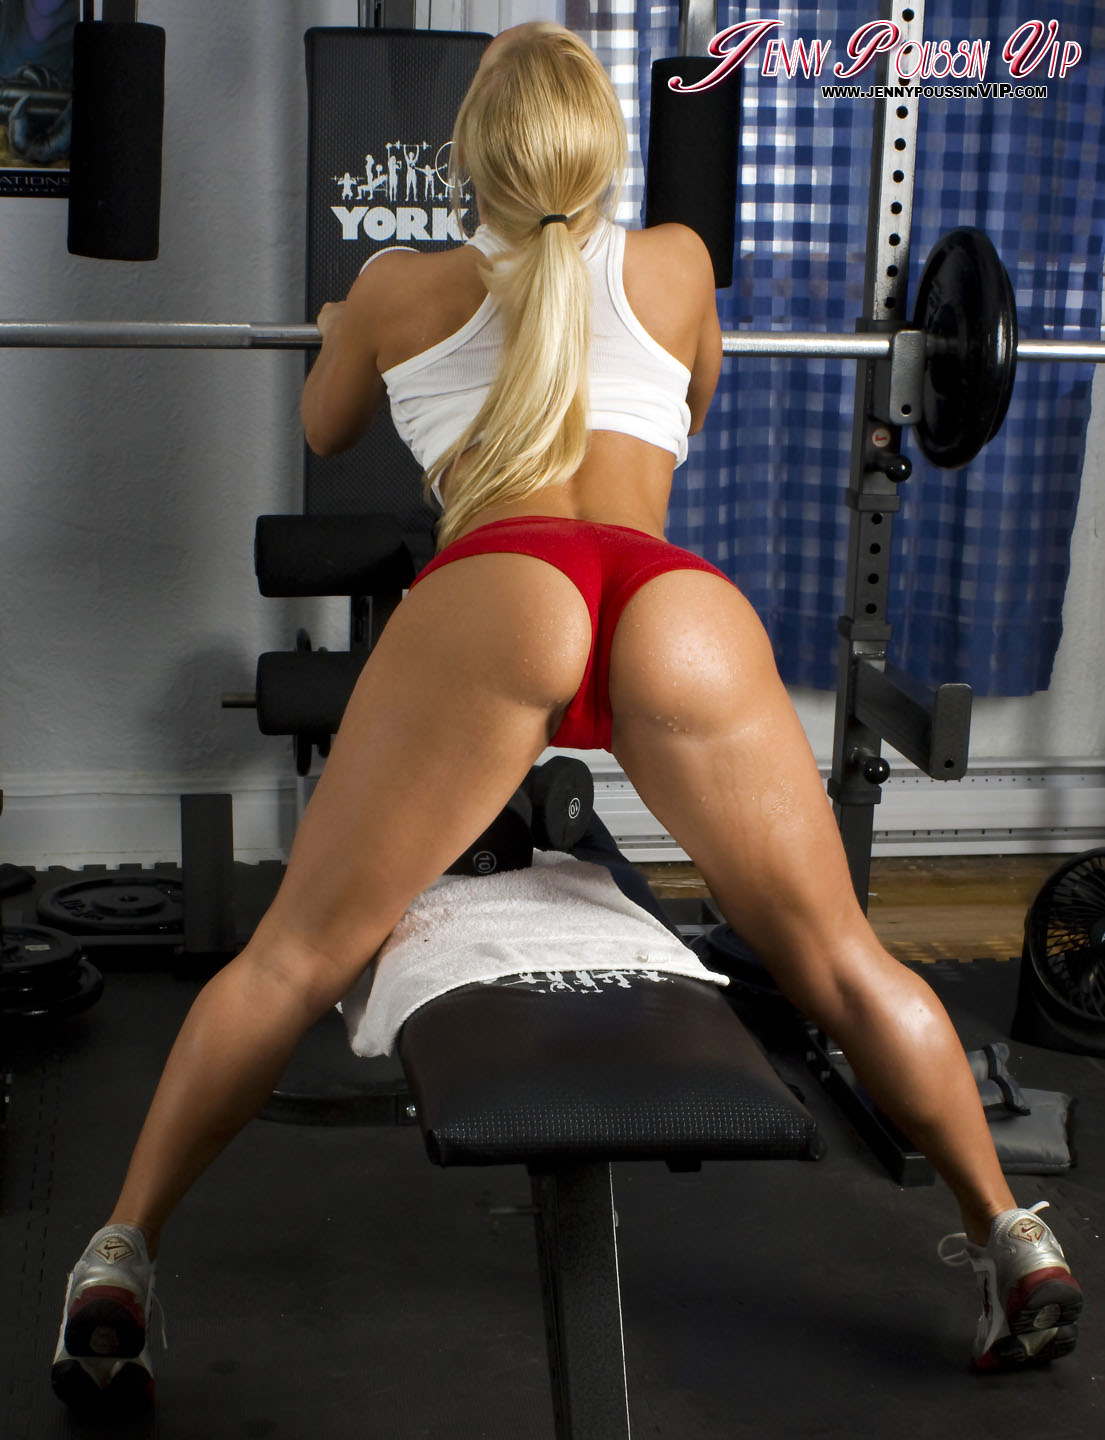 Wish someone squat girl hot